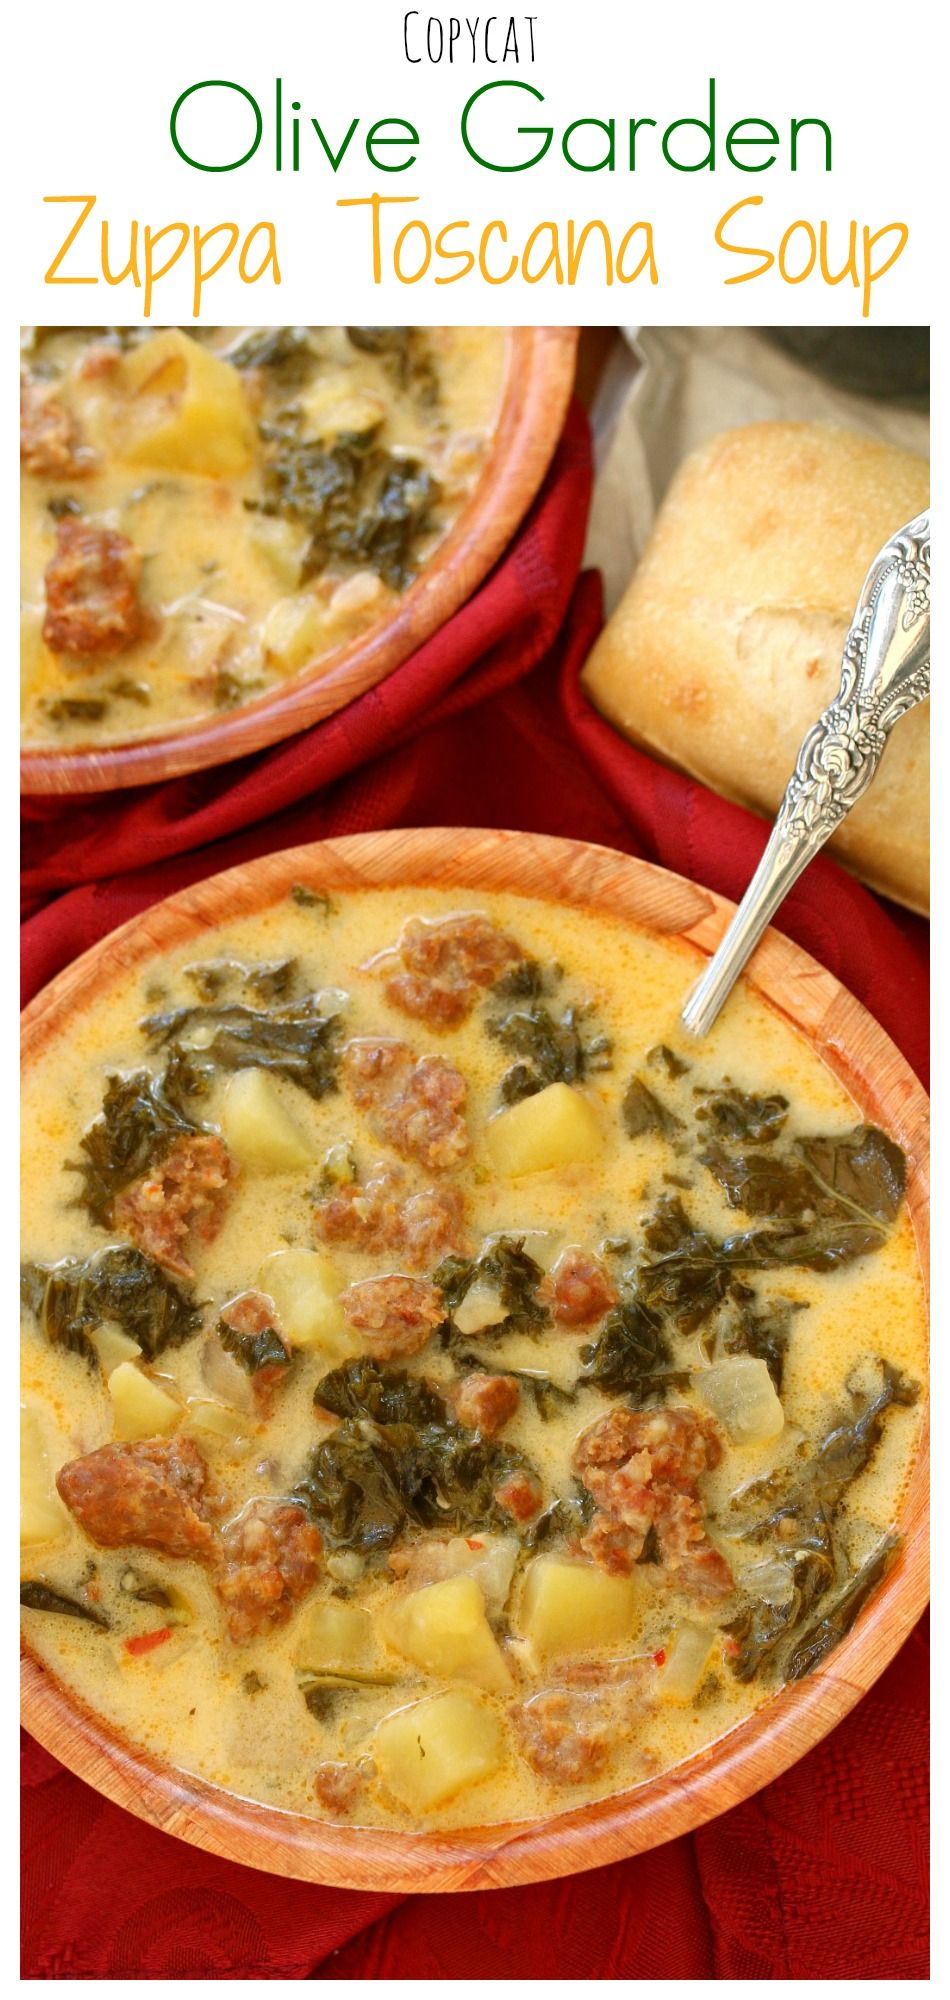 This creamy soup is loaded with sausage, kale, and